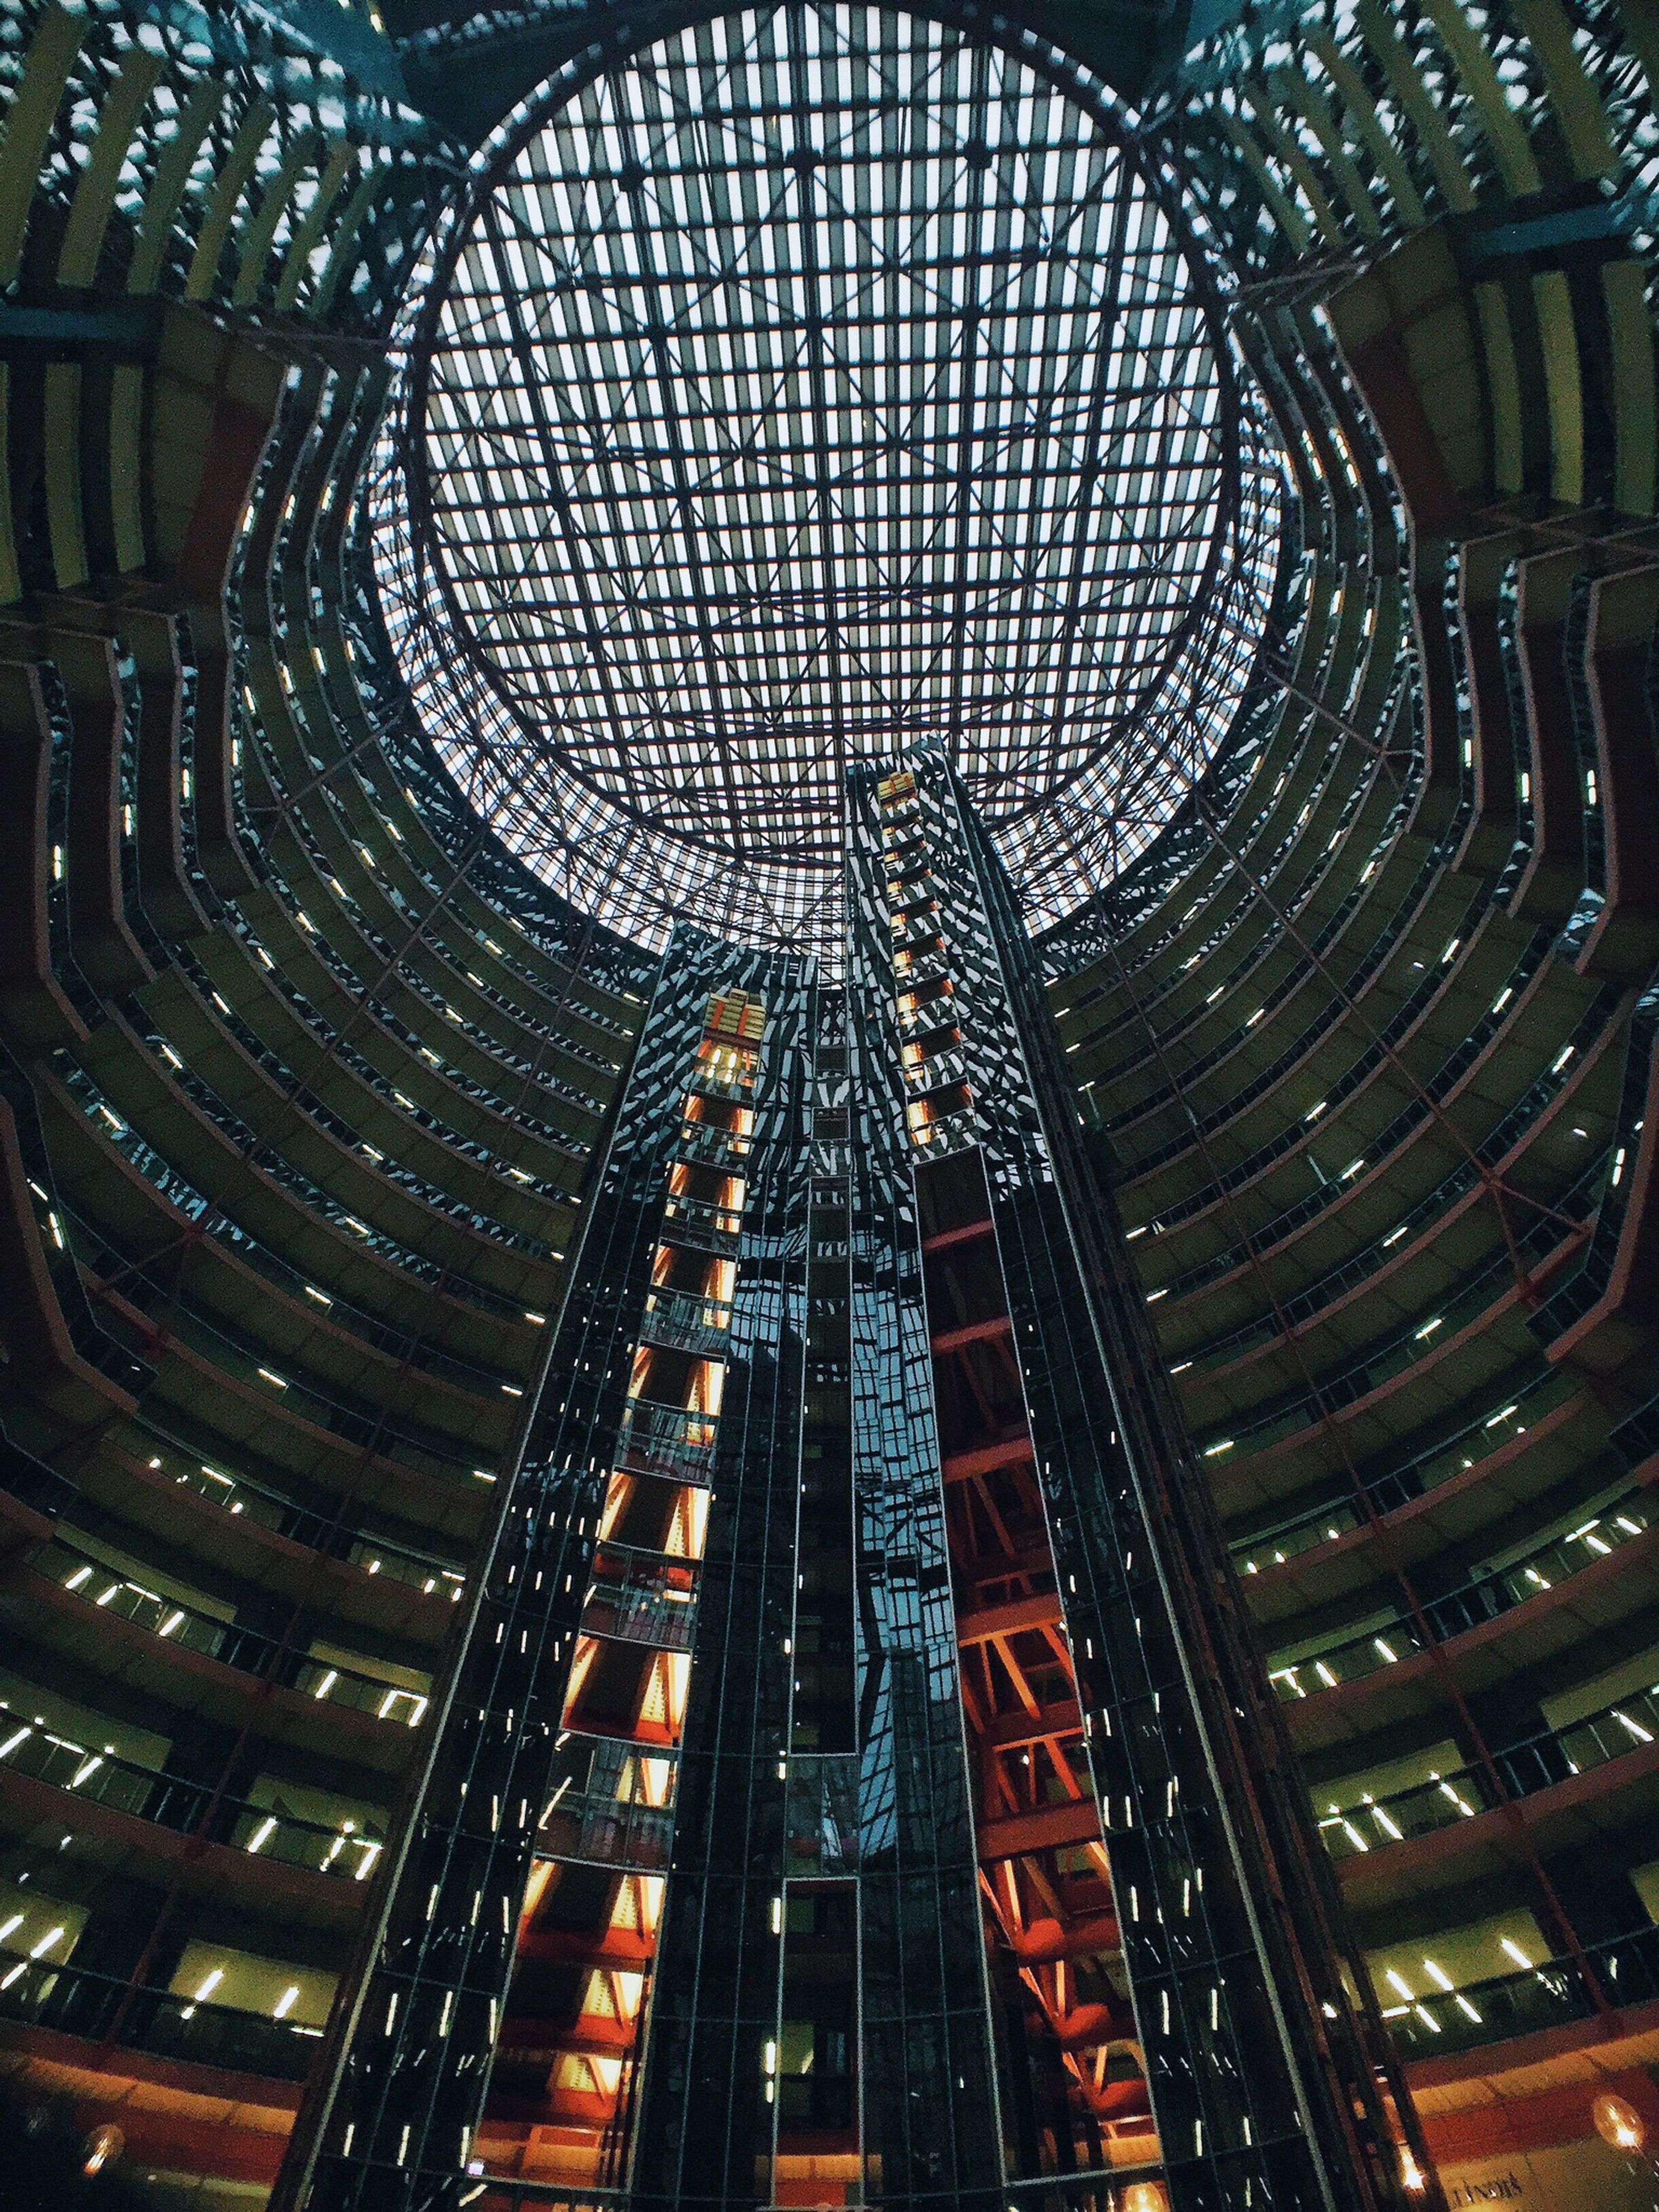 architecture, built structure, low angle view, indoors, modern, pattern, ceiling, architectural feature, building exterior, famous place, skyscraper, illuminated, tall - high, travel destinations, city, tower, glass - material, international landmark, capital cities, design